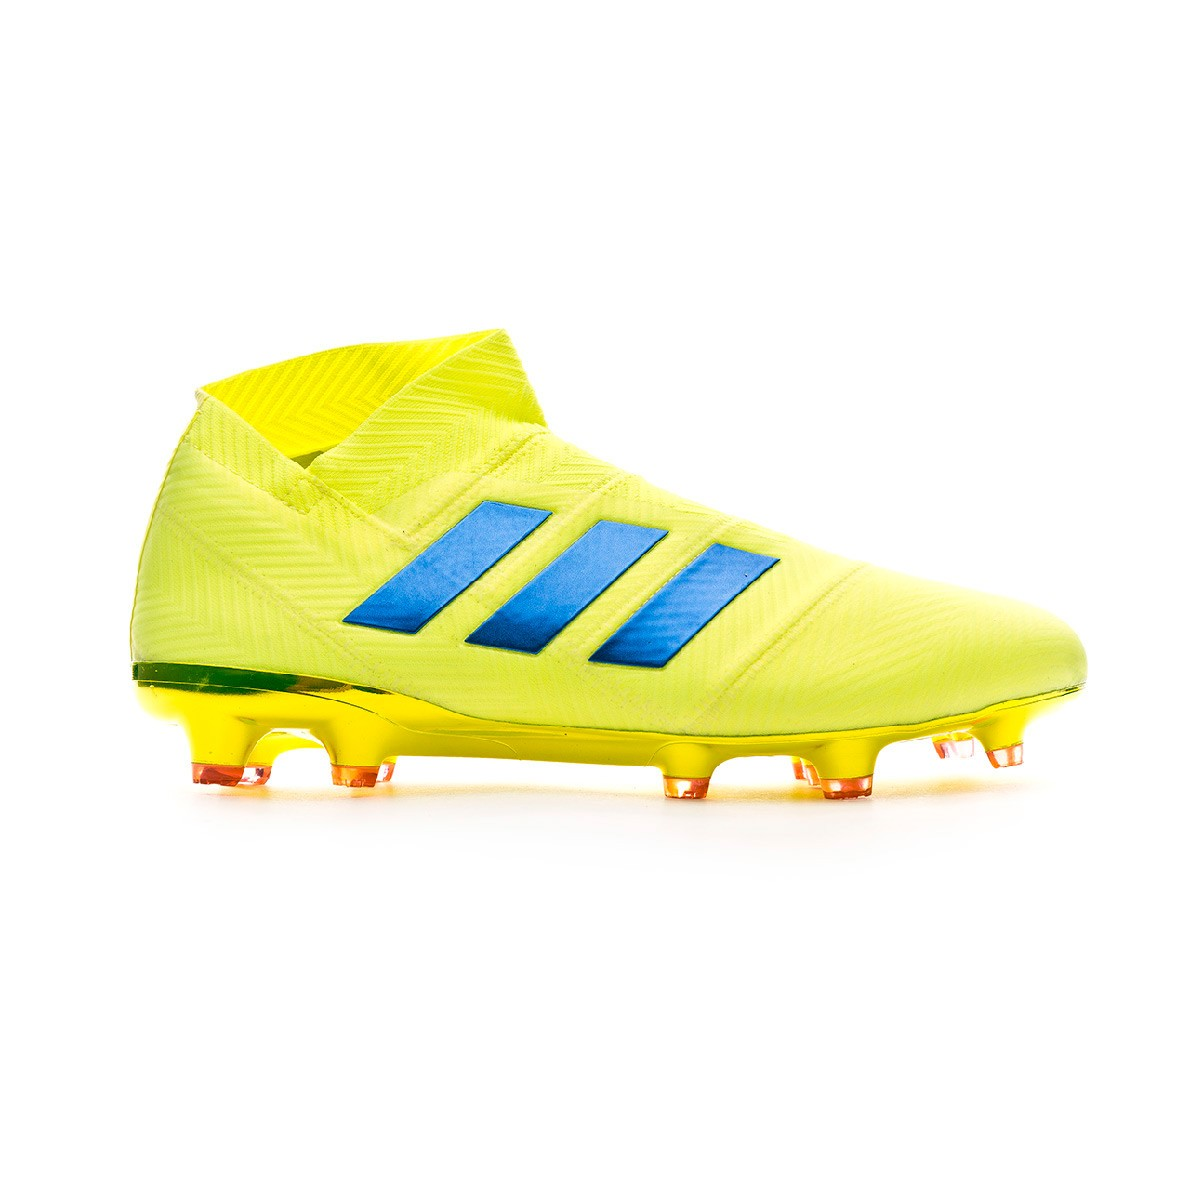 7b581b8a871c Football Boots adidas Nemeziz 18+ FG Solar yellow-Football blue-Active red  - Football store Fútbol Emotion